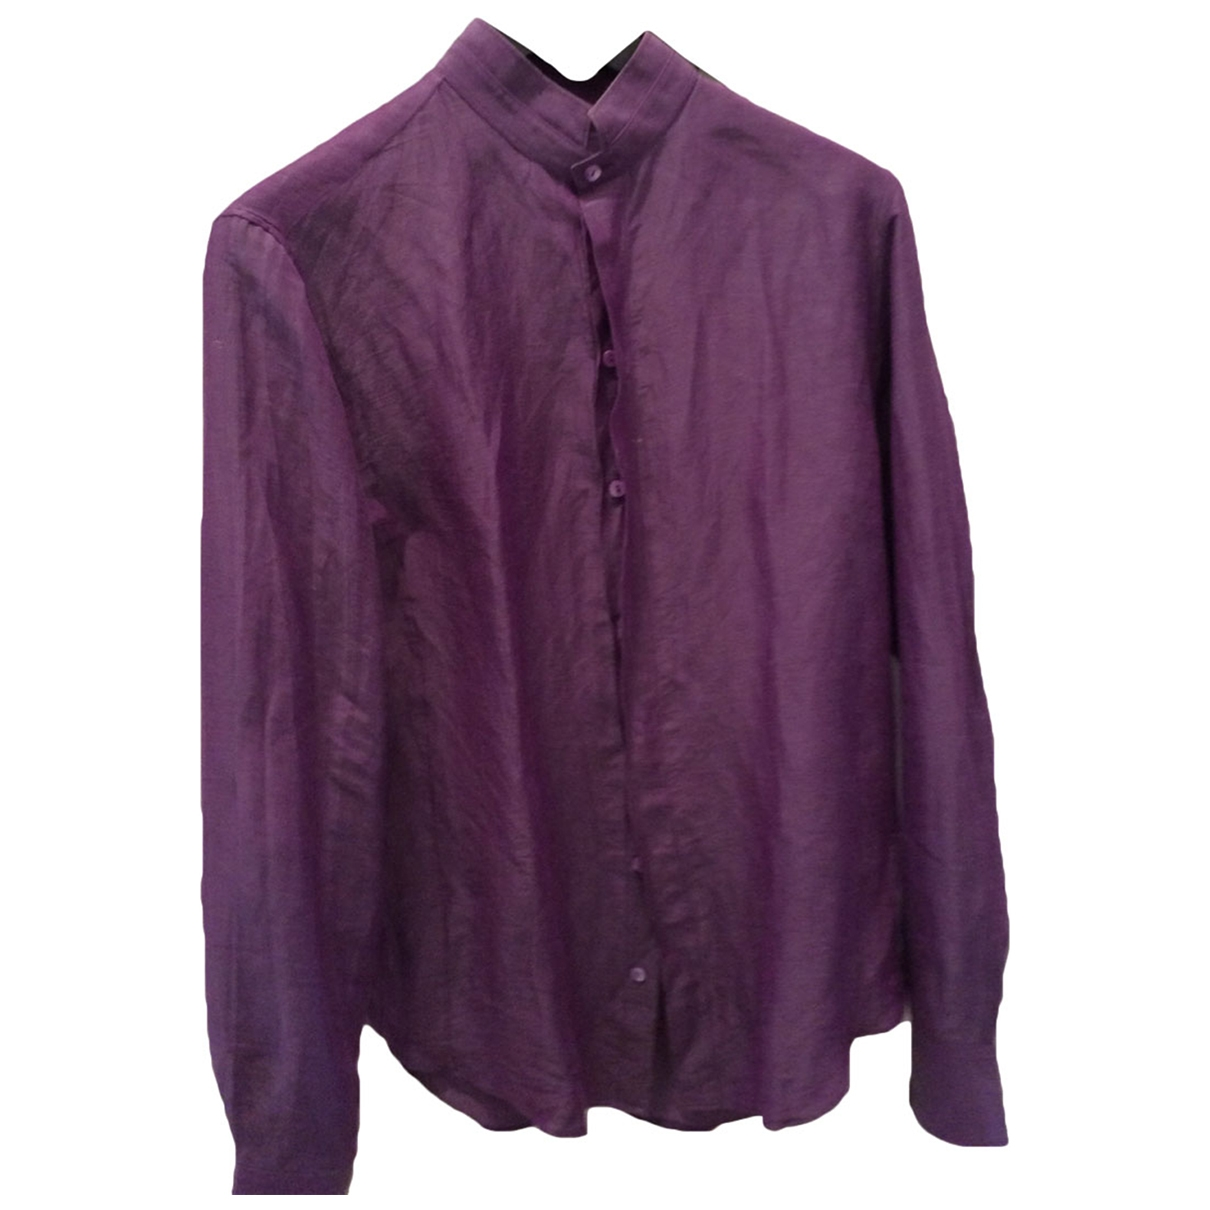 Giorgio Armani \N Purple Linen Shirts for Men 39 EU (tour de cou / collar)